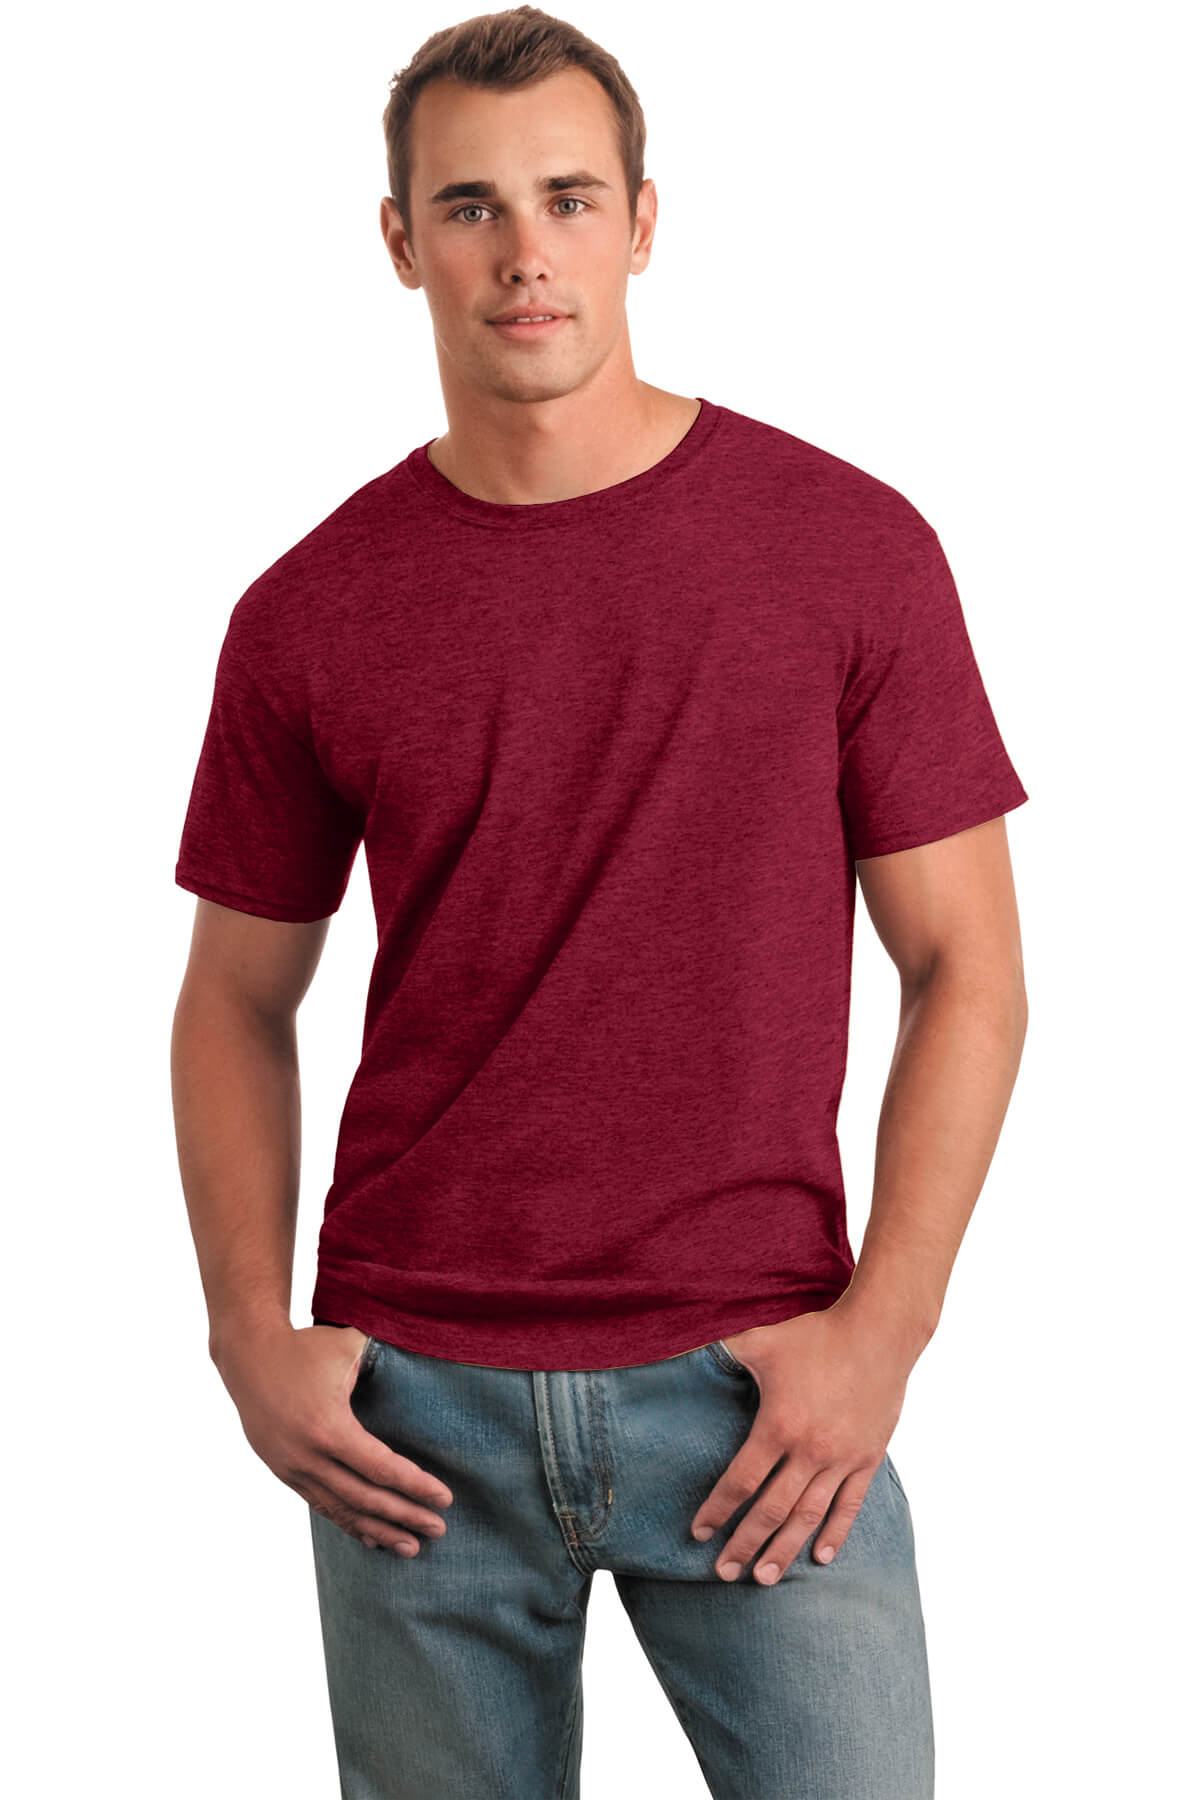 Cherry Red T-Shirt Model Front